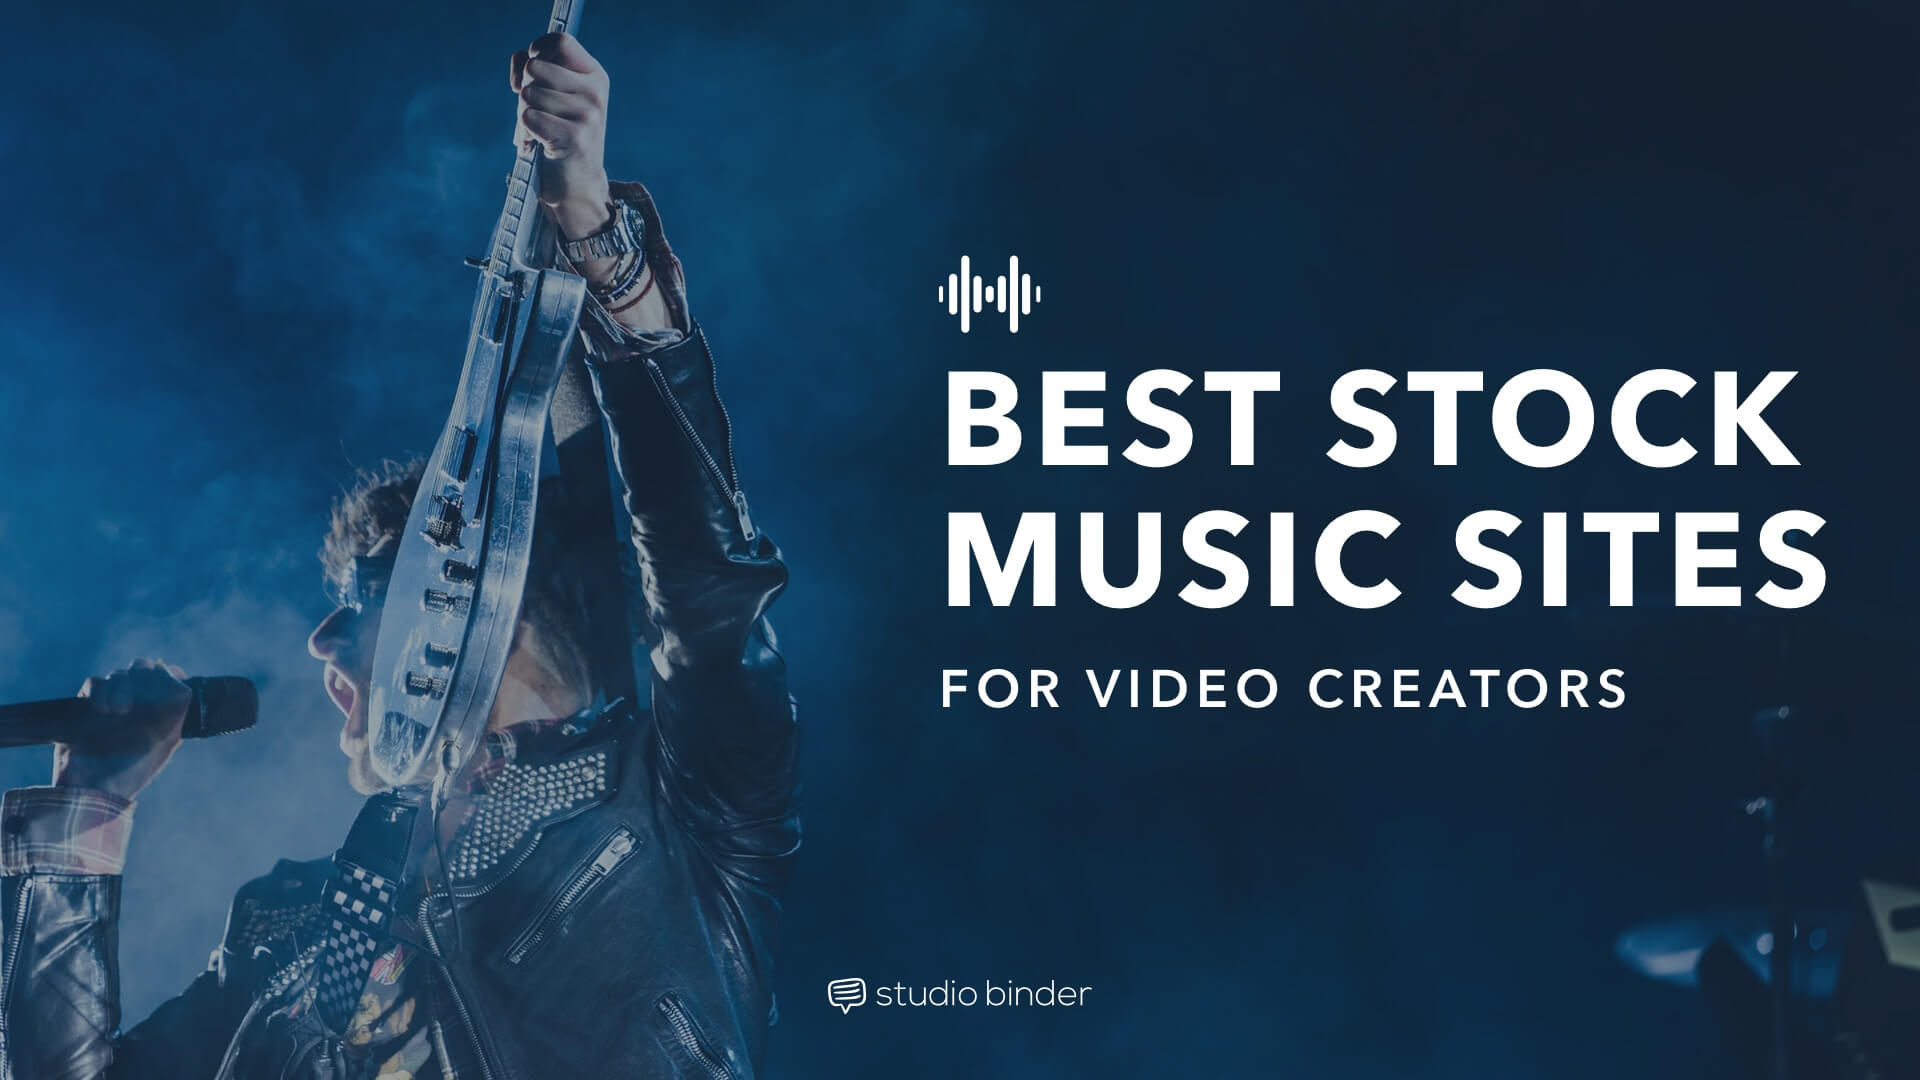 Best Stock Music Sites for Video Creators - Social Image - StudioBinder